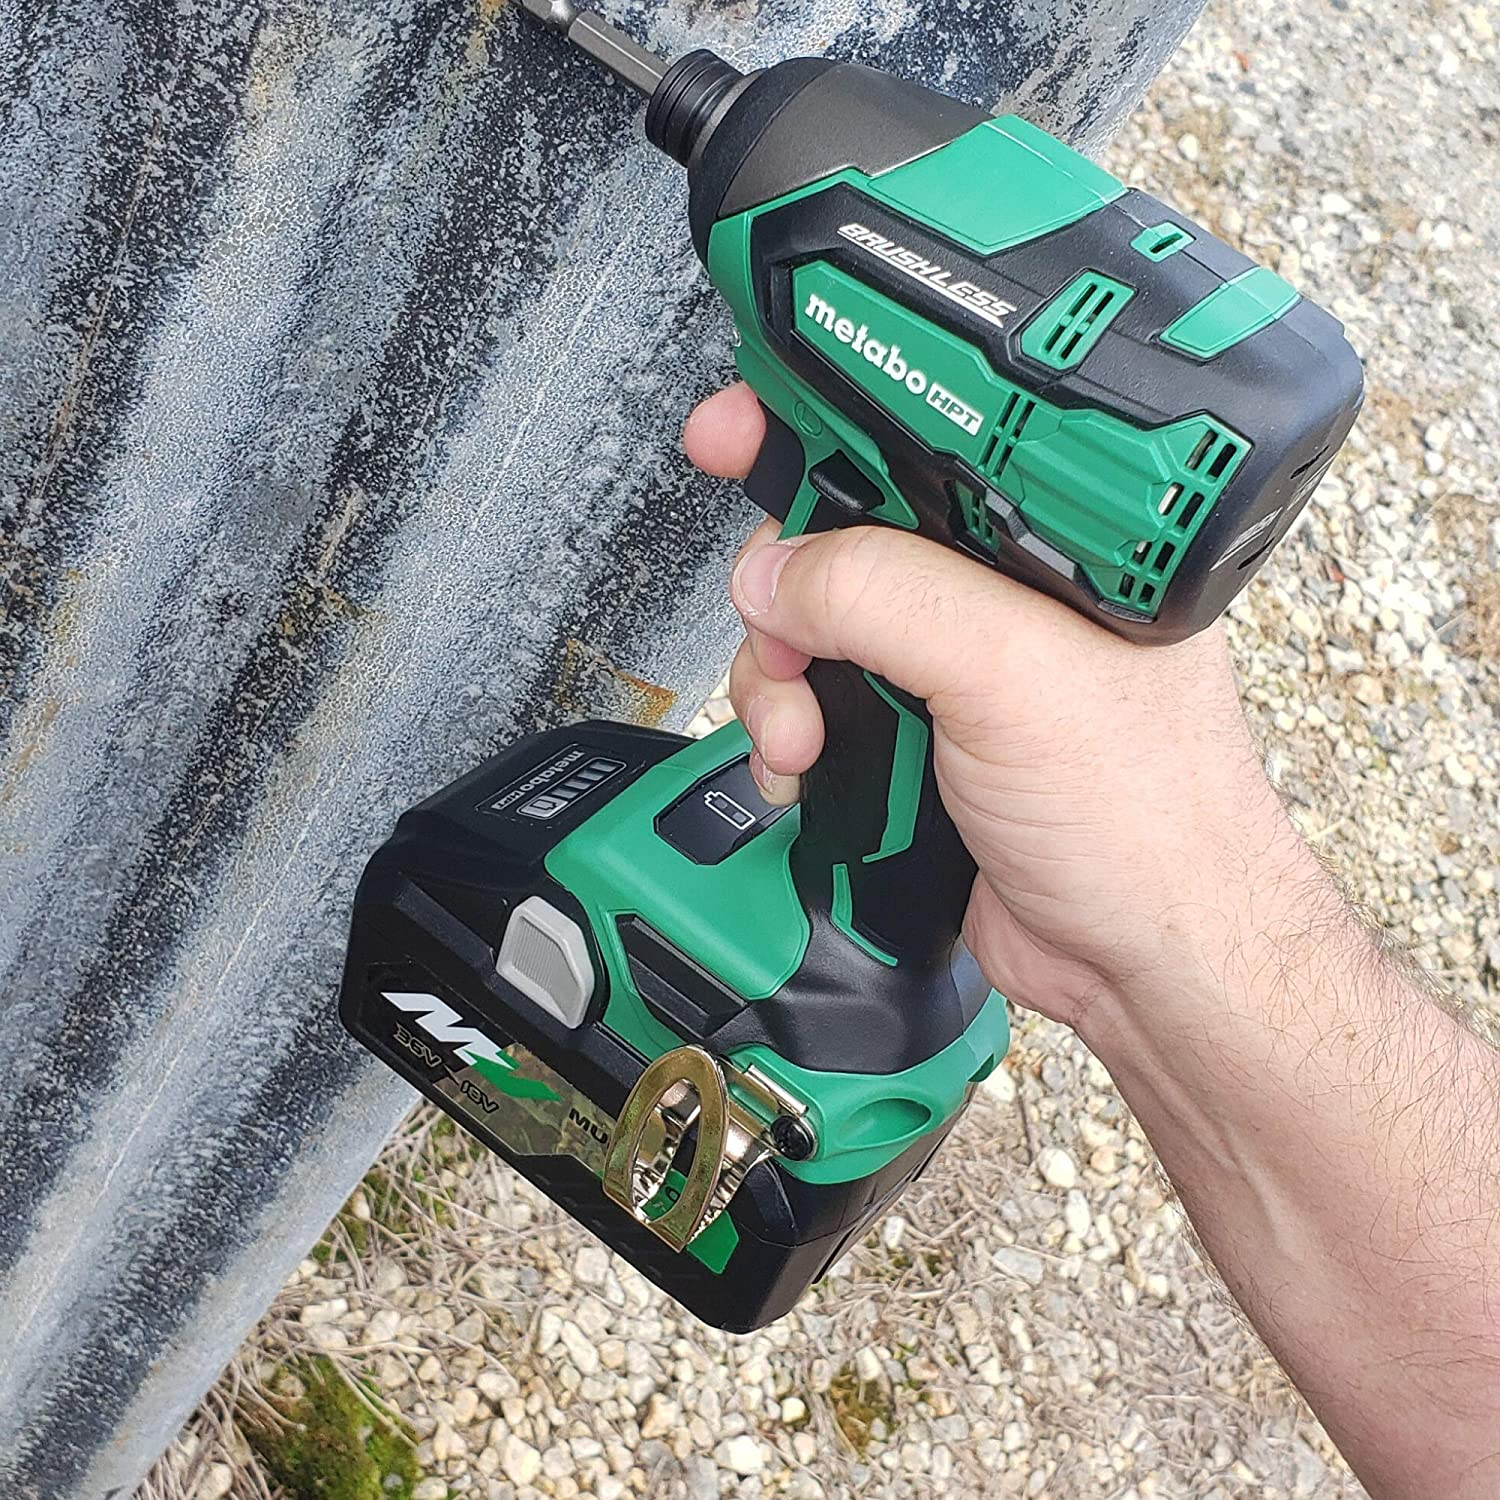 Metabo HPT 18V Cordless Impact Driver 18V Compact 3.0Ah Battery 1 Brushless 36V//18V Multivolt 5.0Ah /& Up to 3,100 Rpm 3,400 BPM 1 Includes 2 Batteries 1,522 in-lbs of Torque WH18DBFL2T